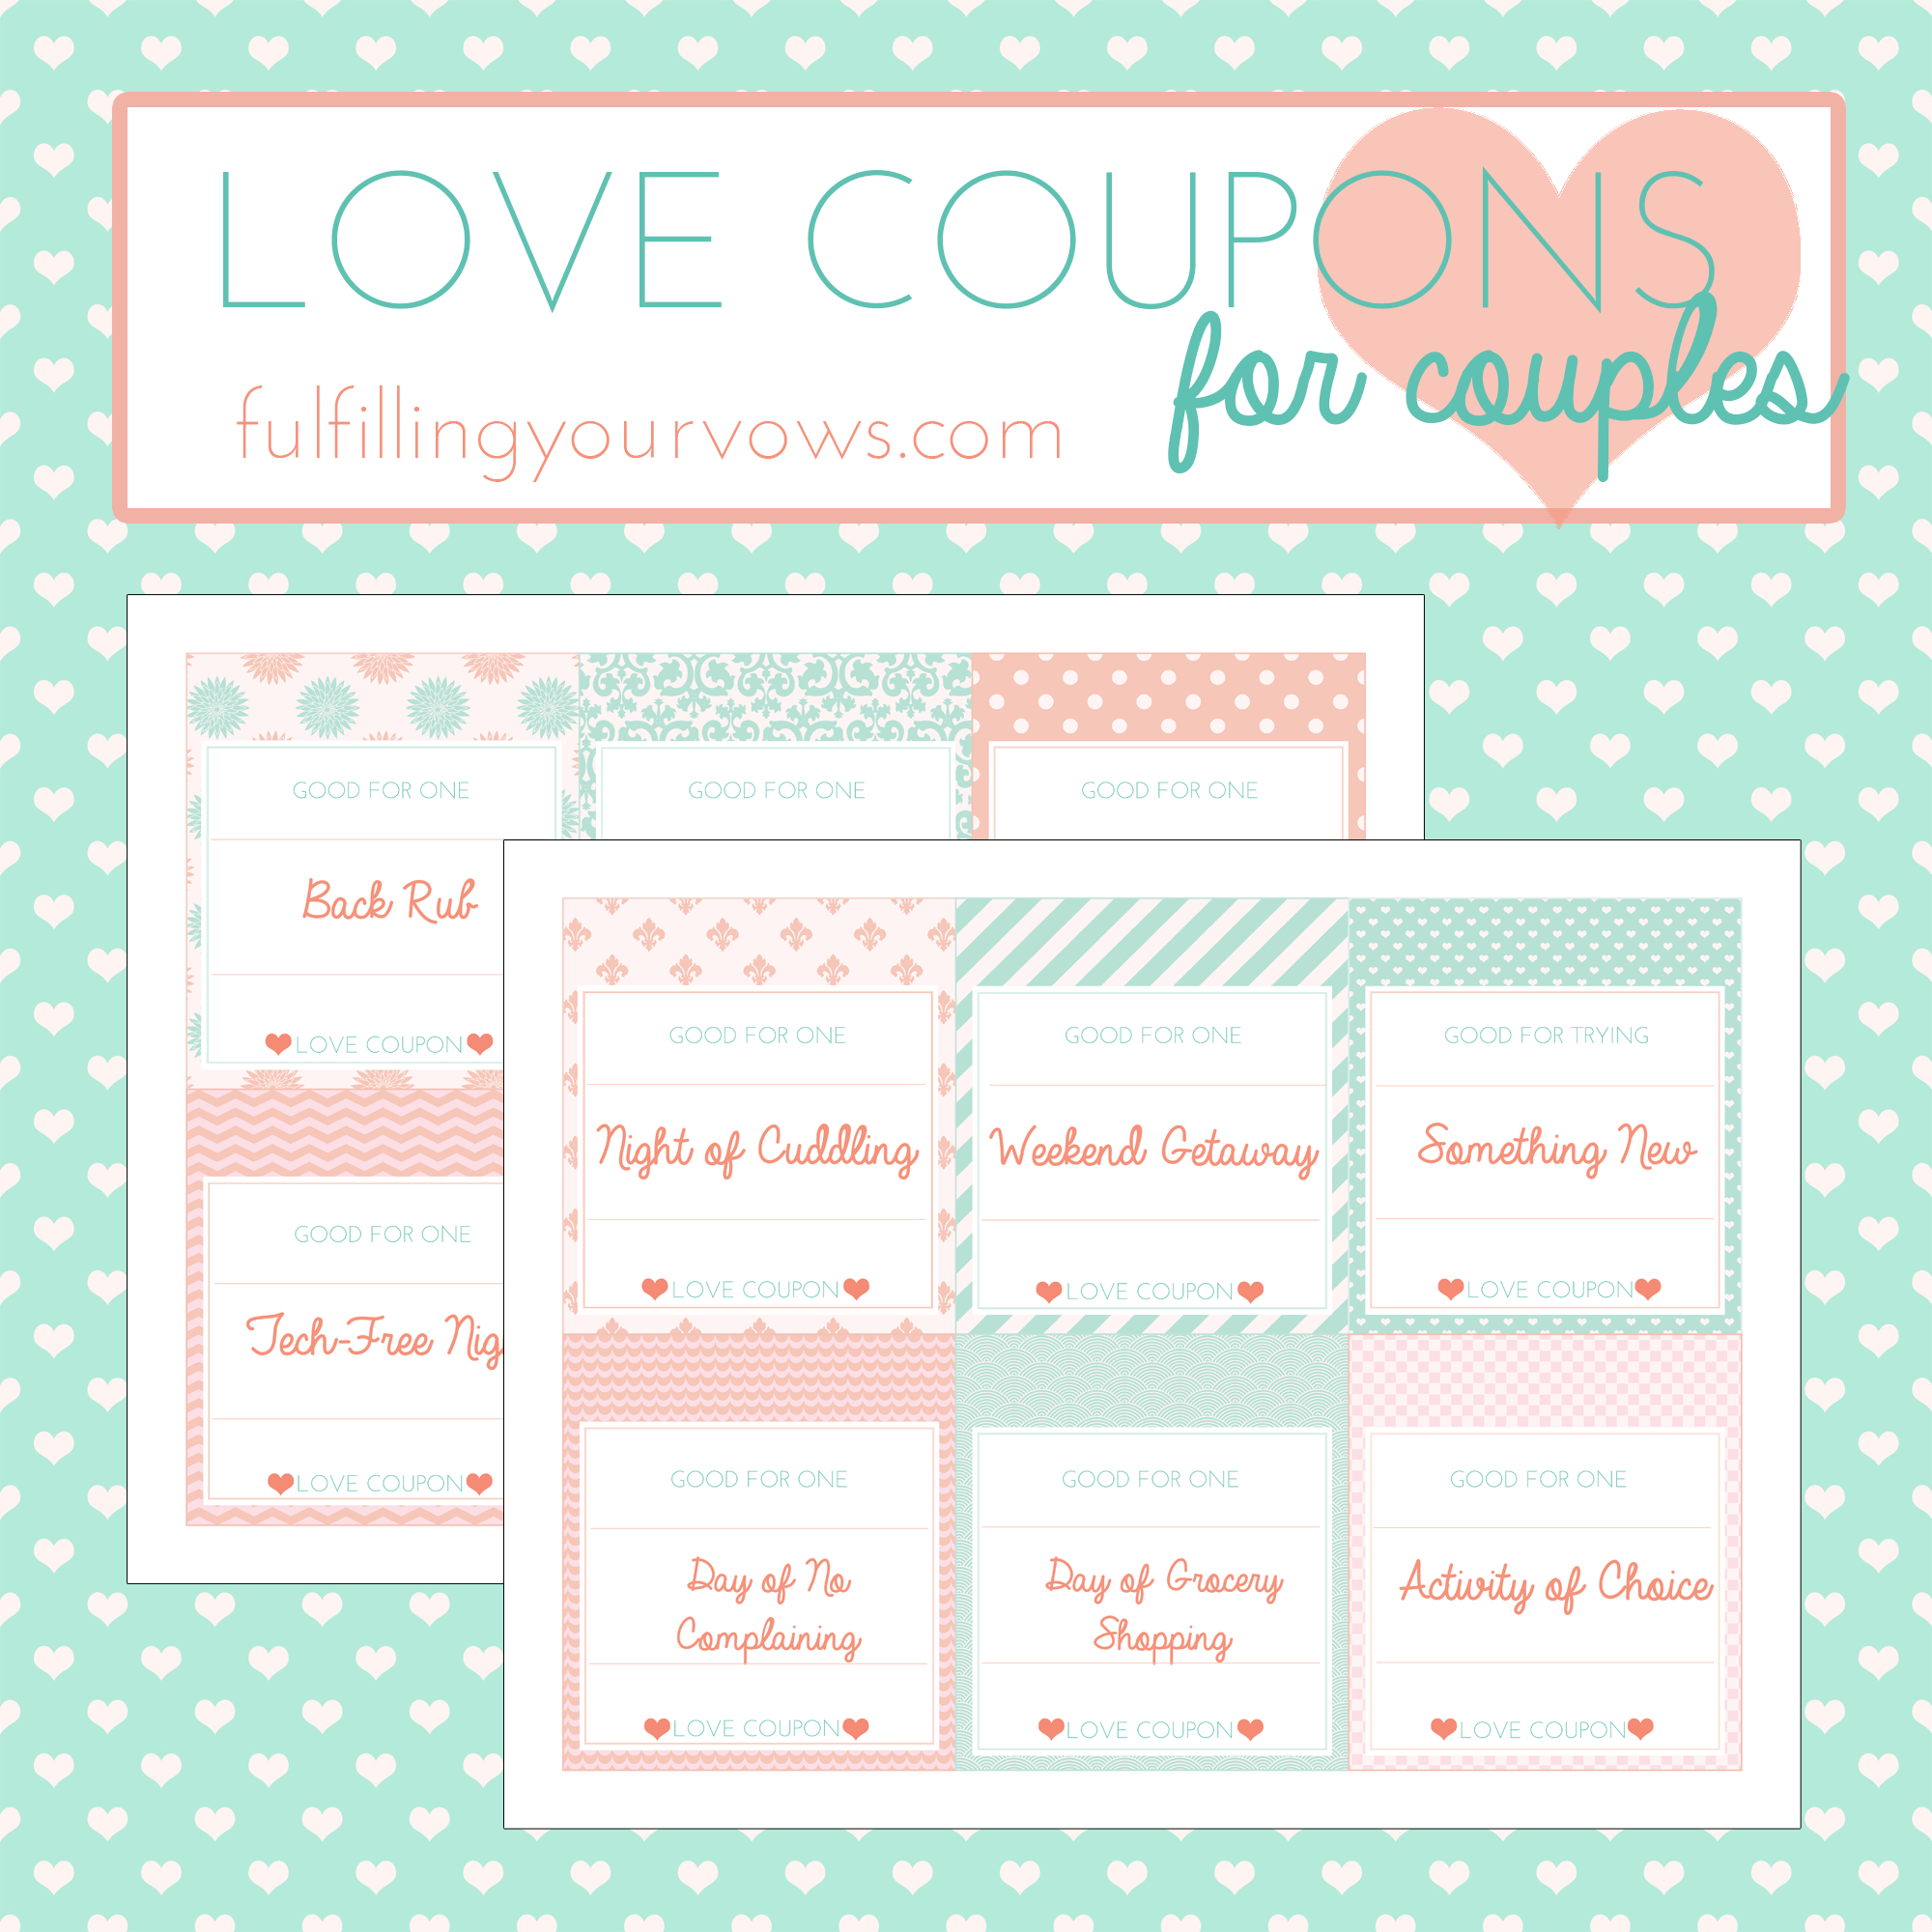 Free Printable Love Coupons For Couples - Fulfilling Your Vows - Free Printable Love Coupons